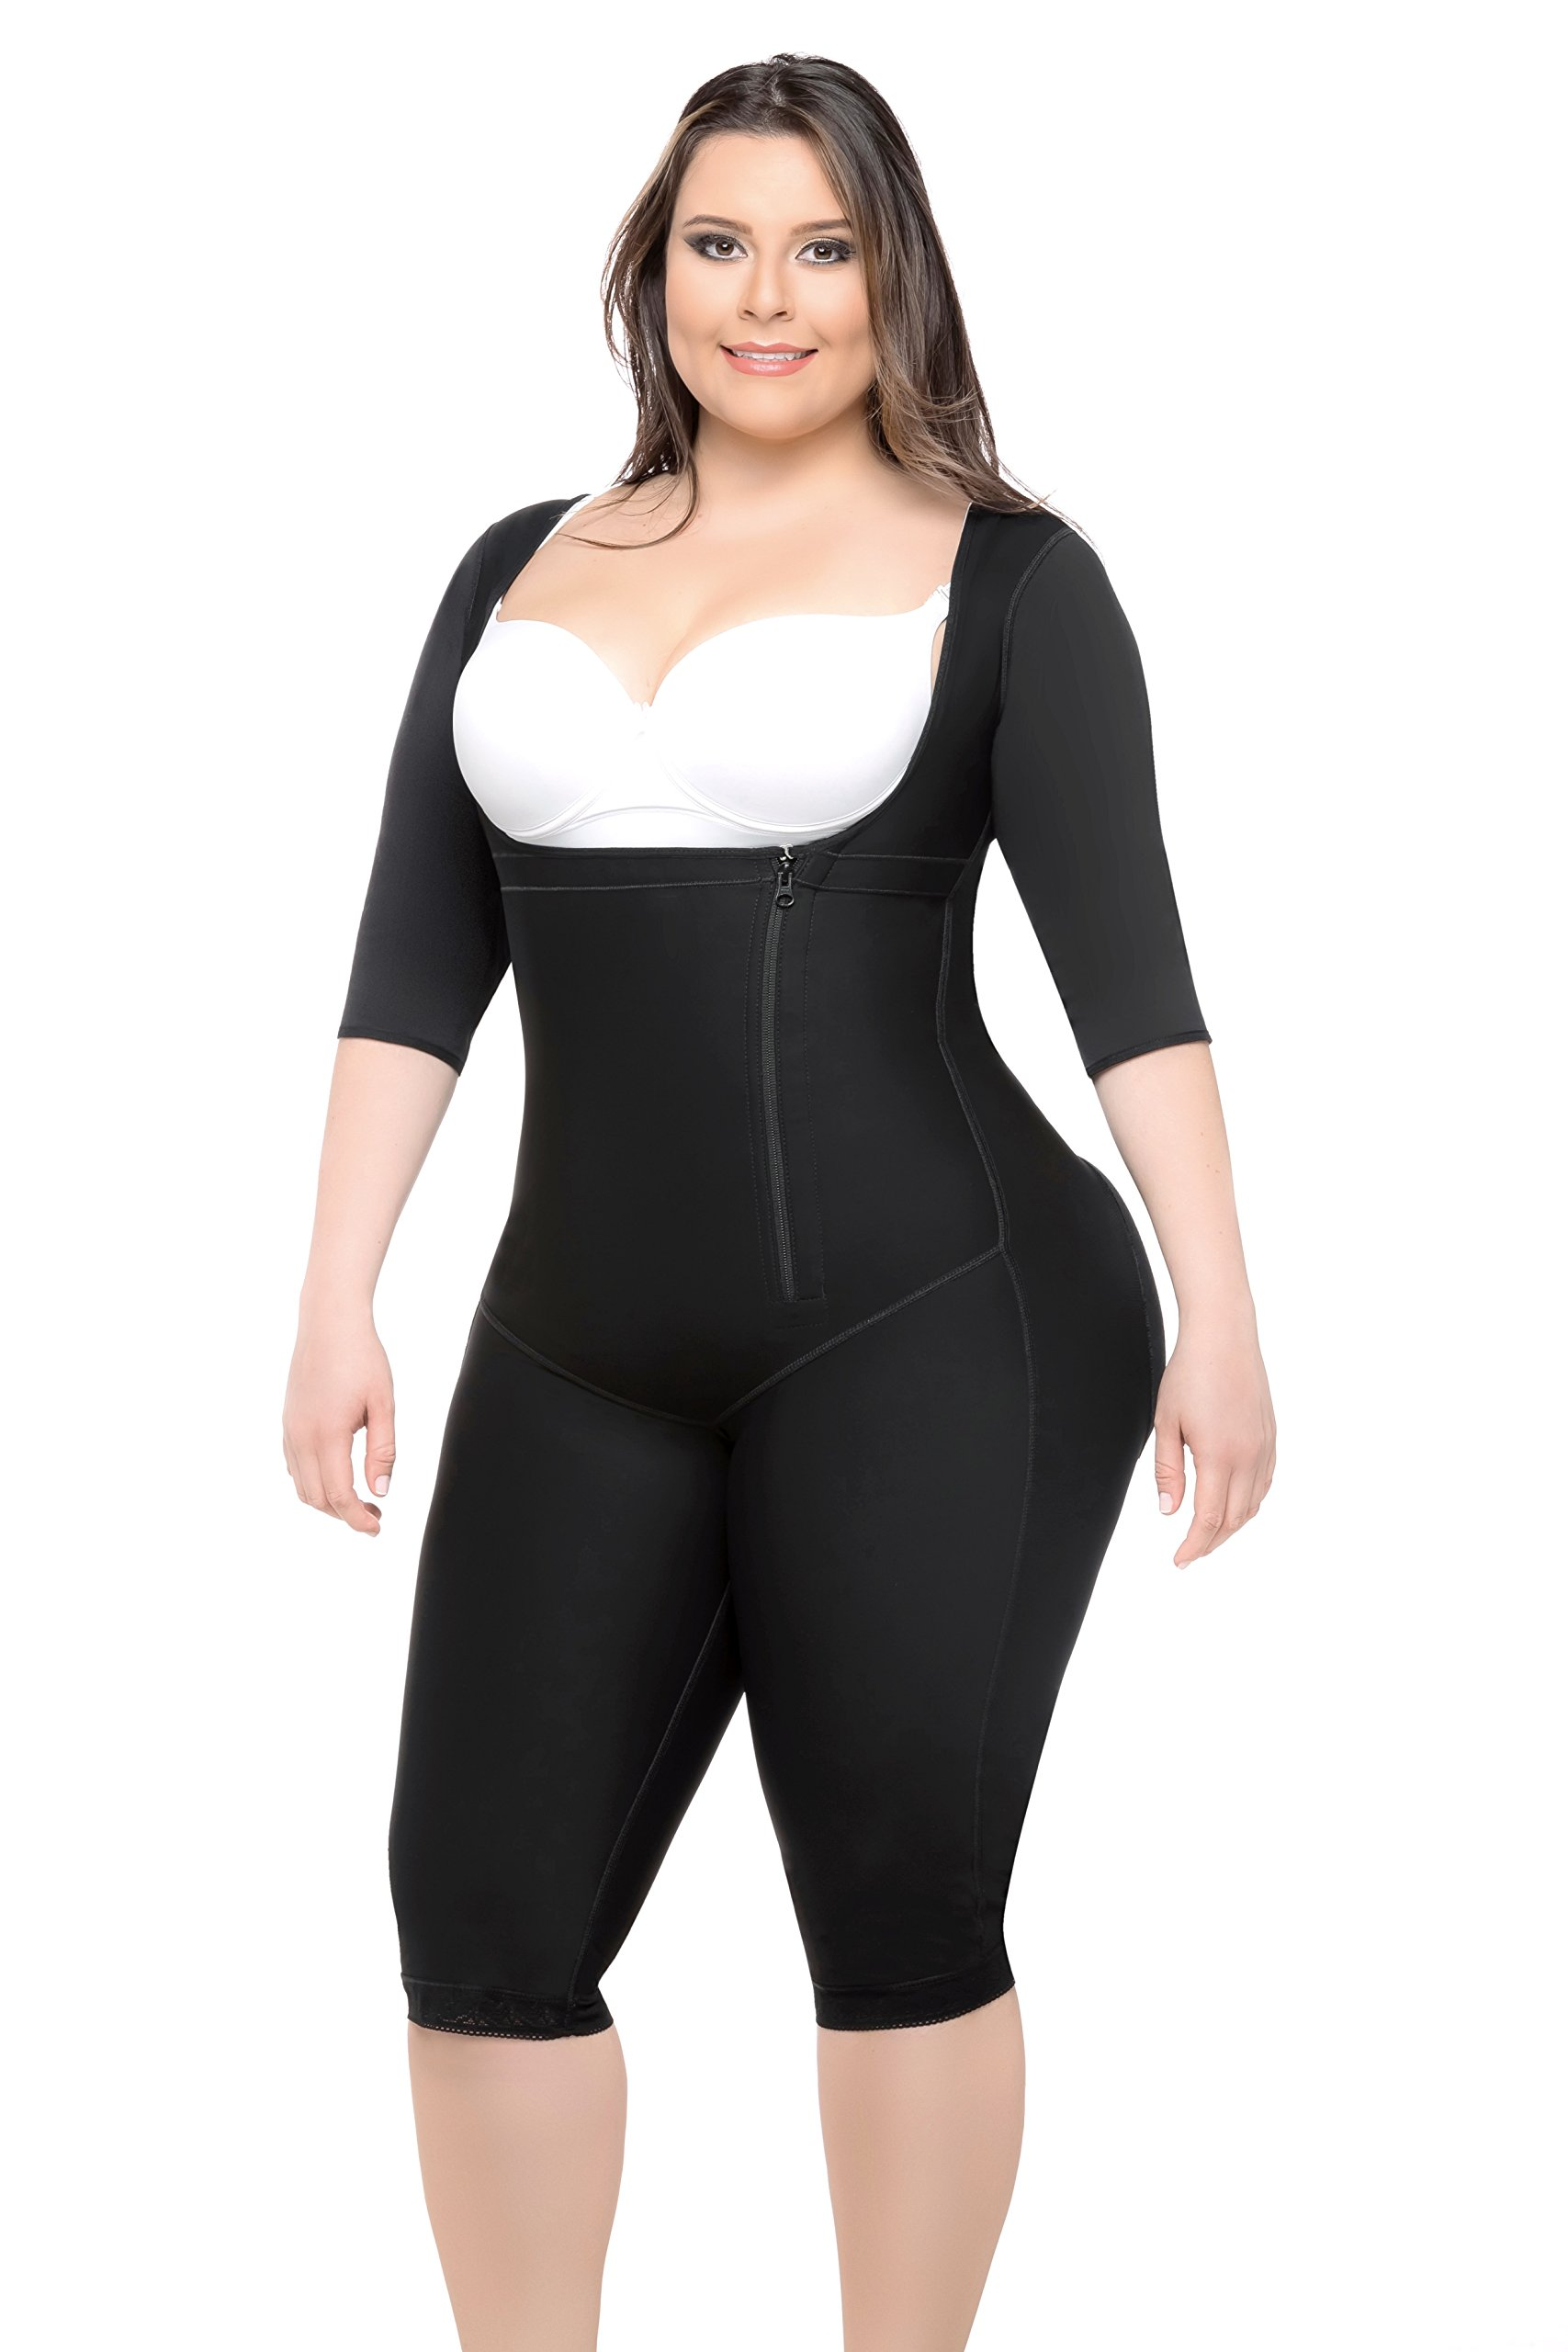 Fajas Colombianas Full Body Shaper With Sleeves & Butt Lifter Knee Length Style by All About Shapewear